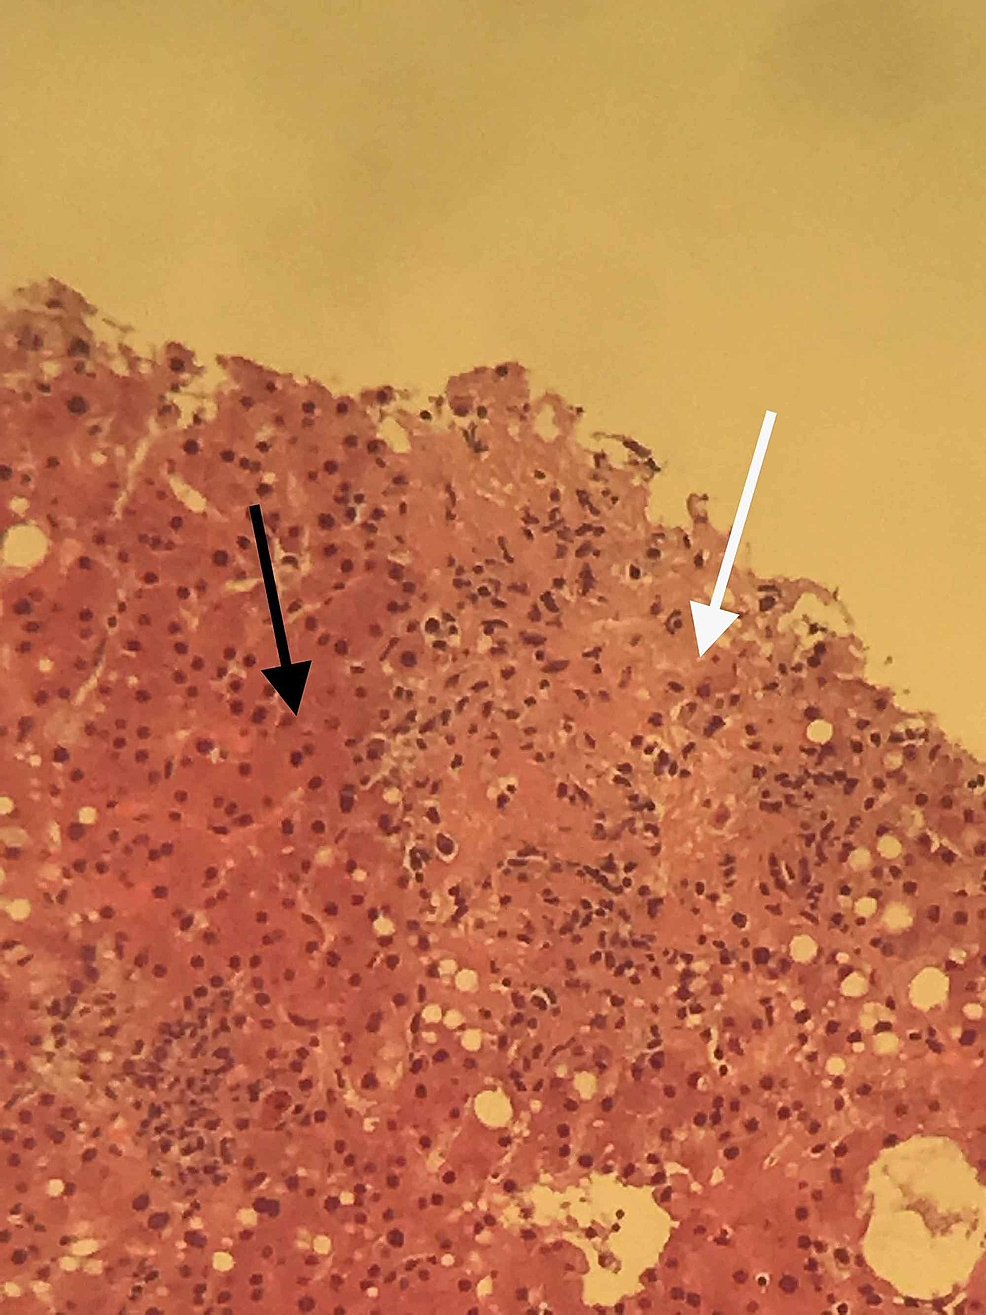 Pathology-image-of-the-patient